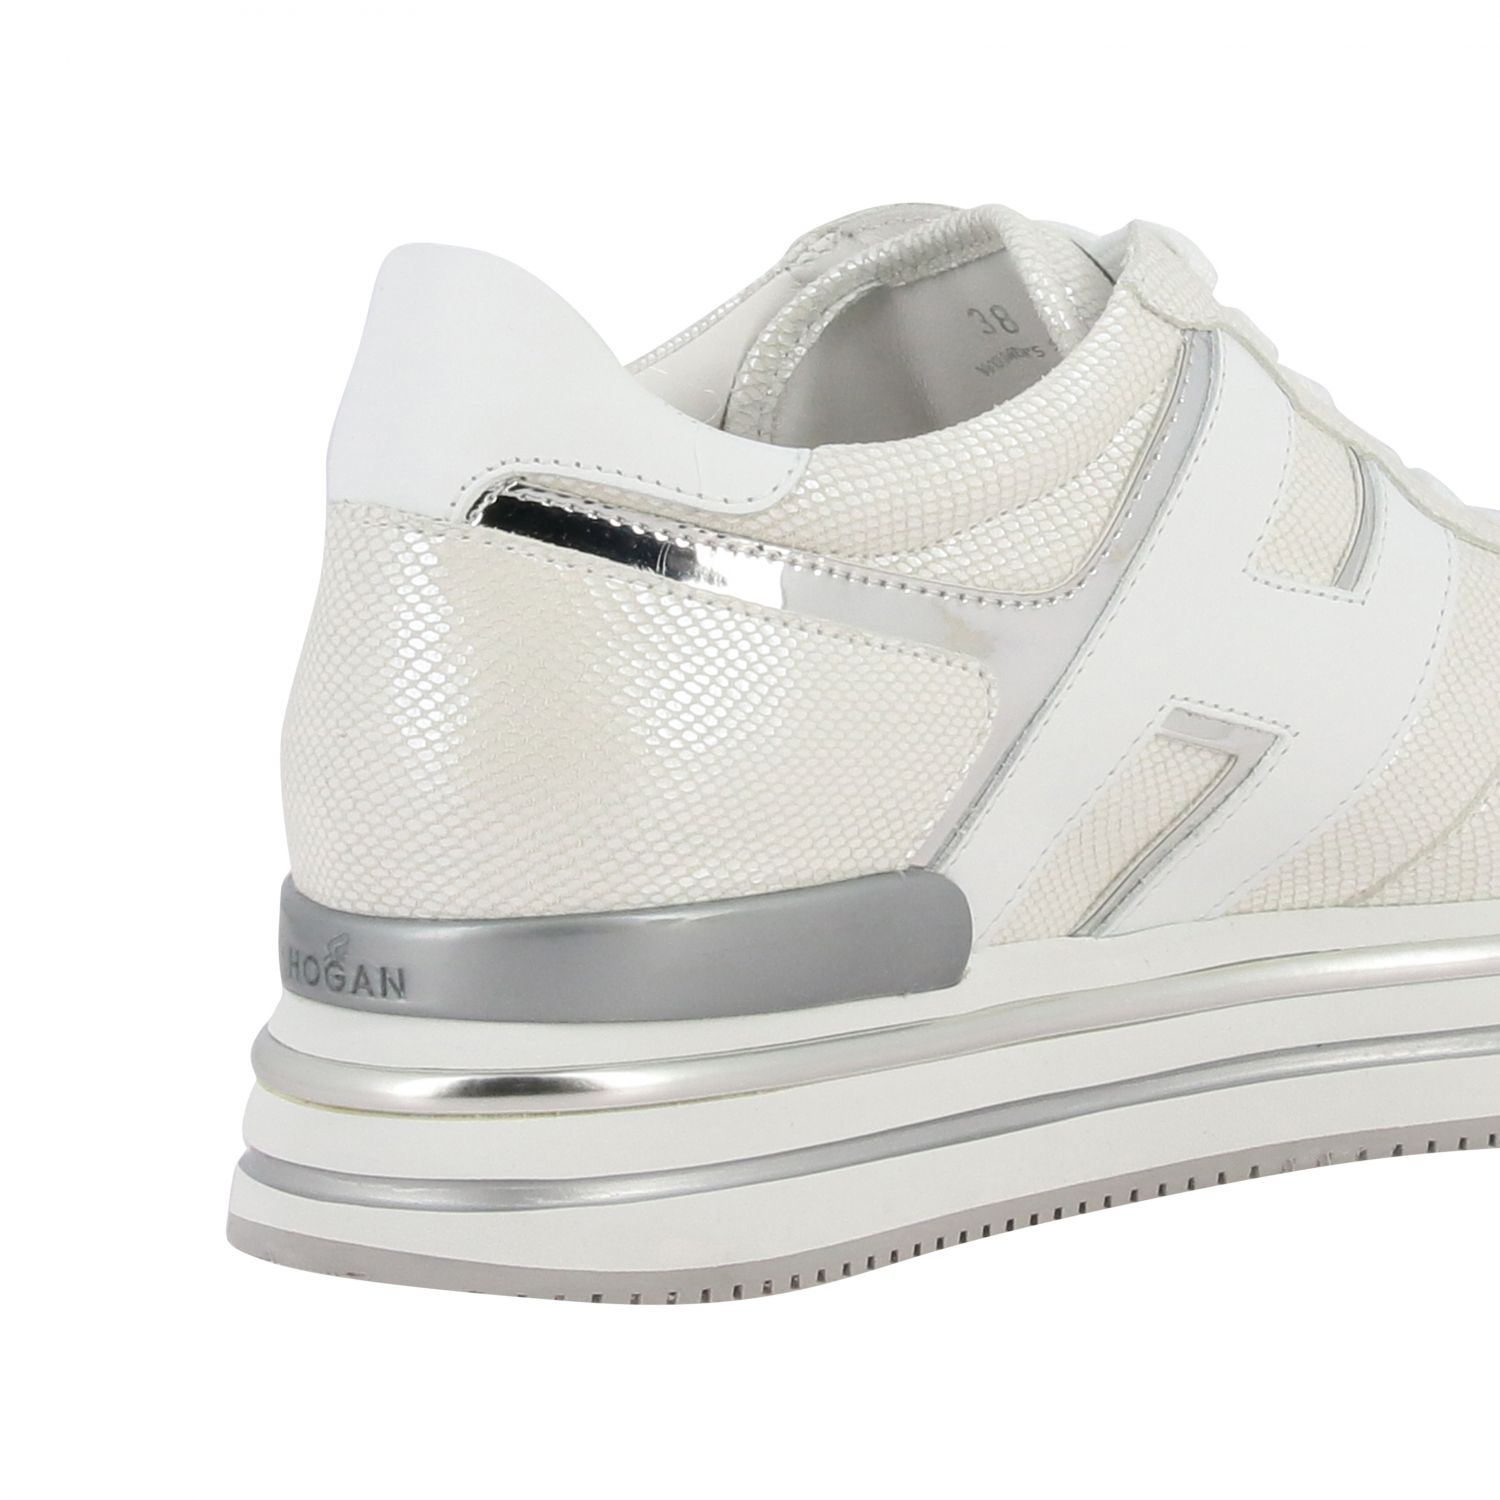 Hogan 468 midi platform sneakers in leather with big H and glitter piping white 5